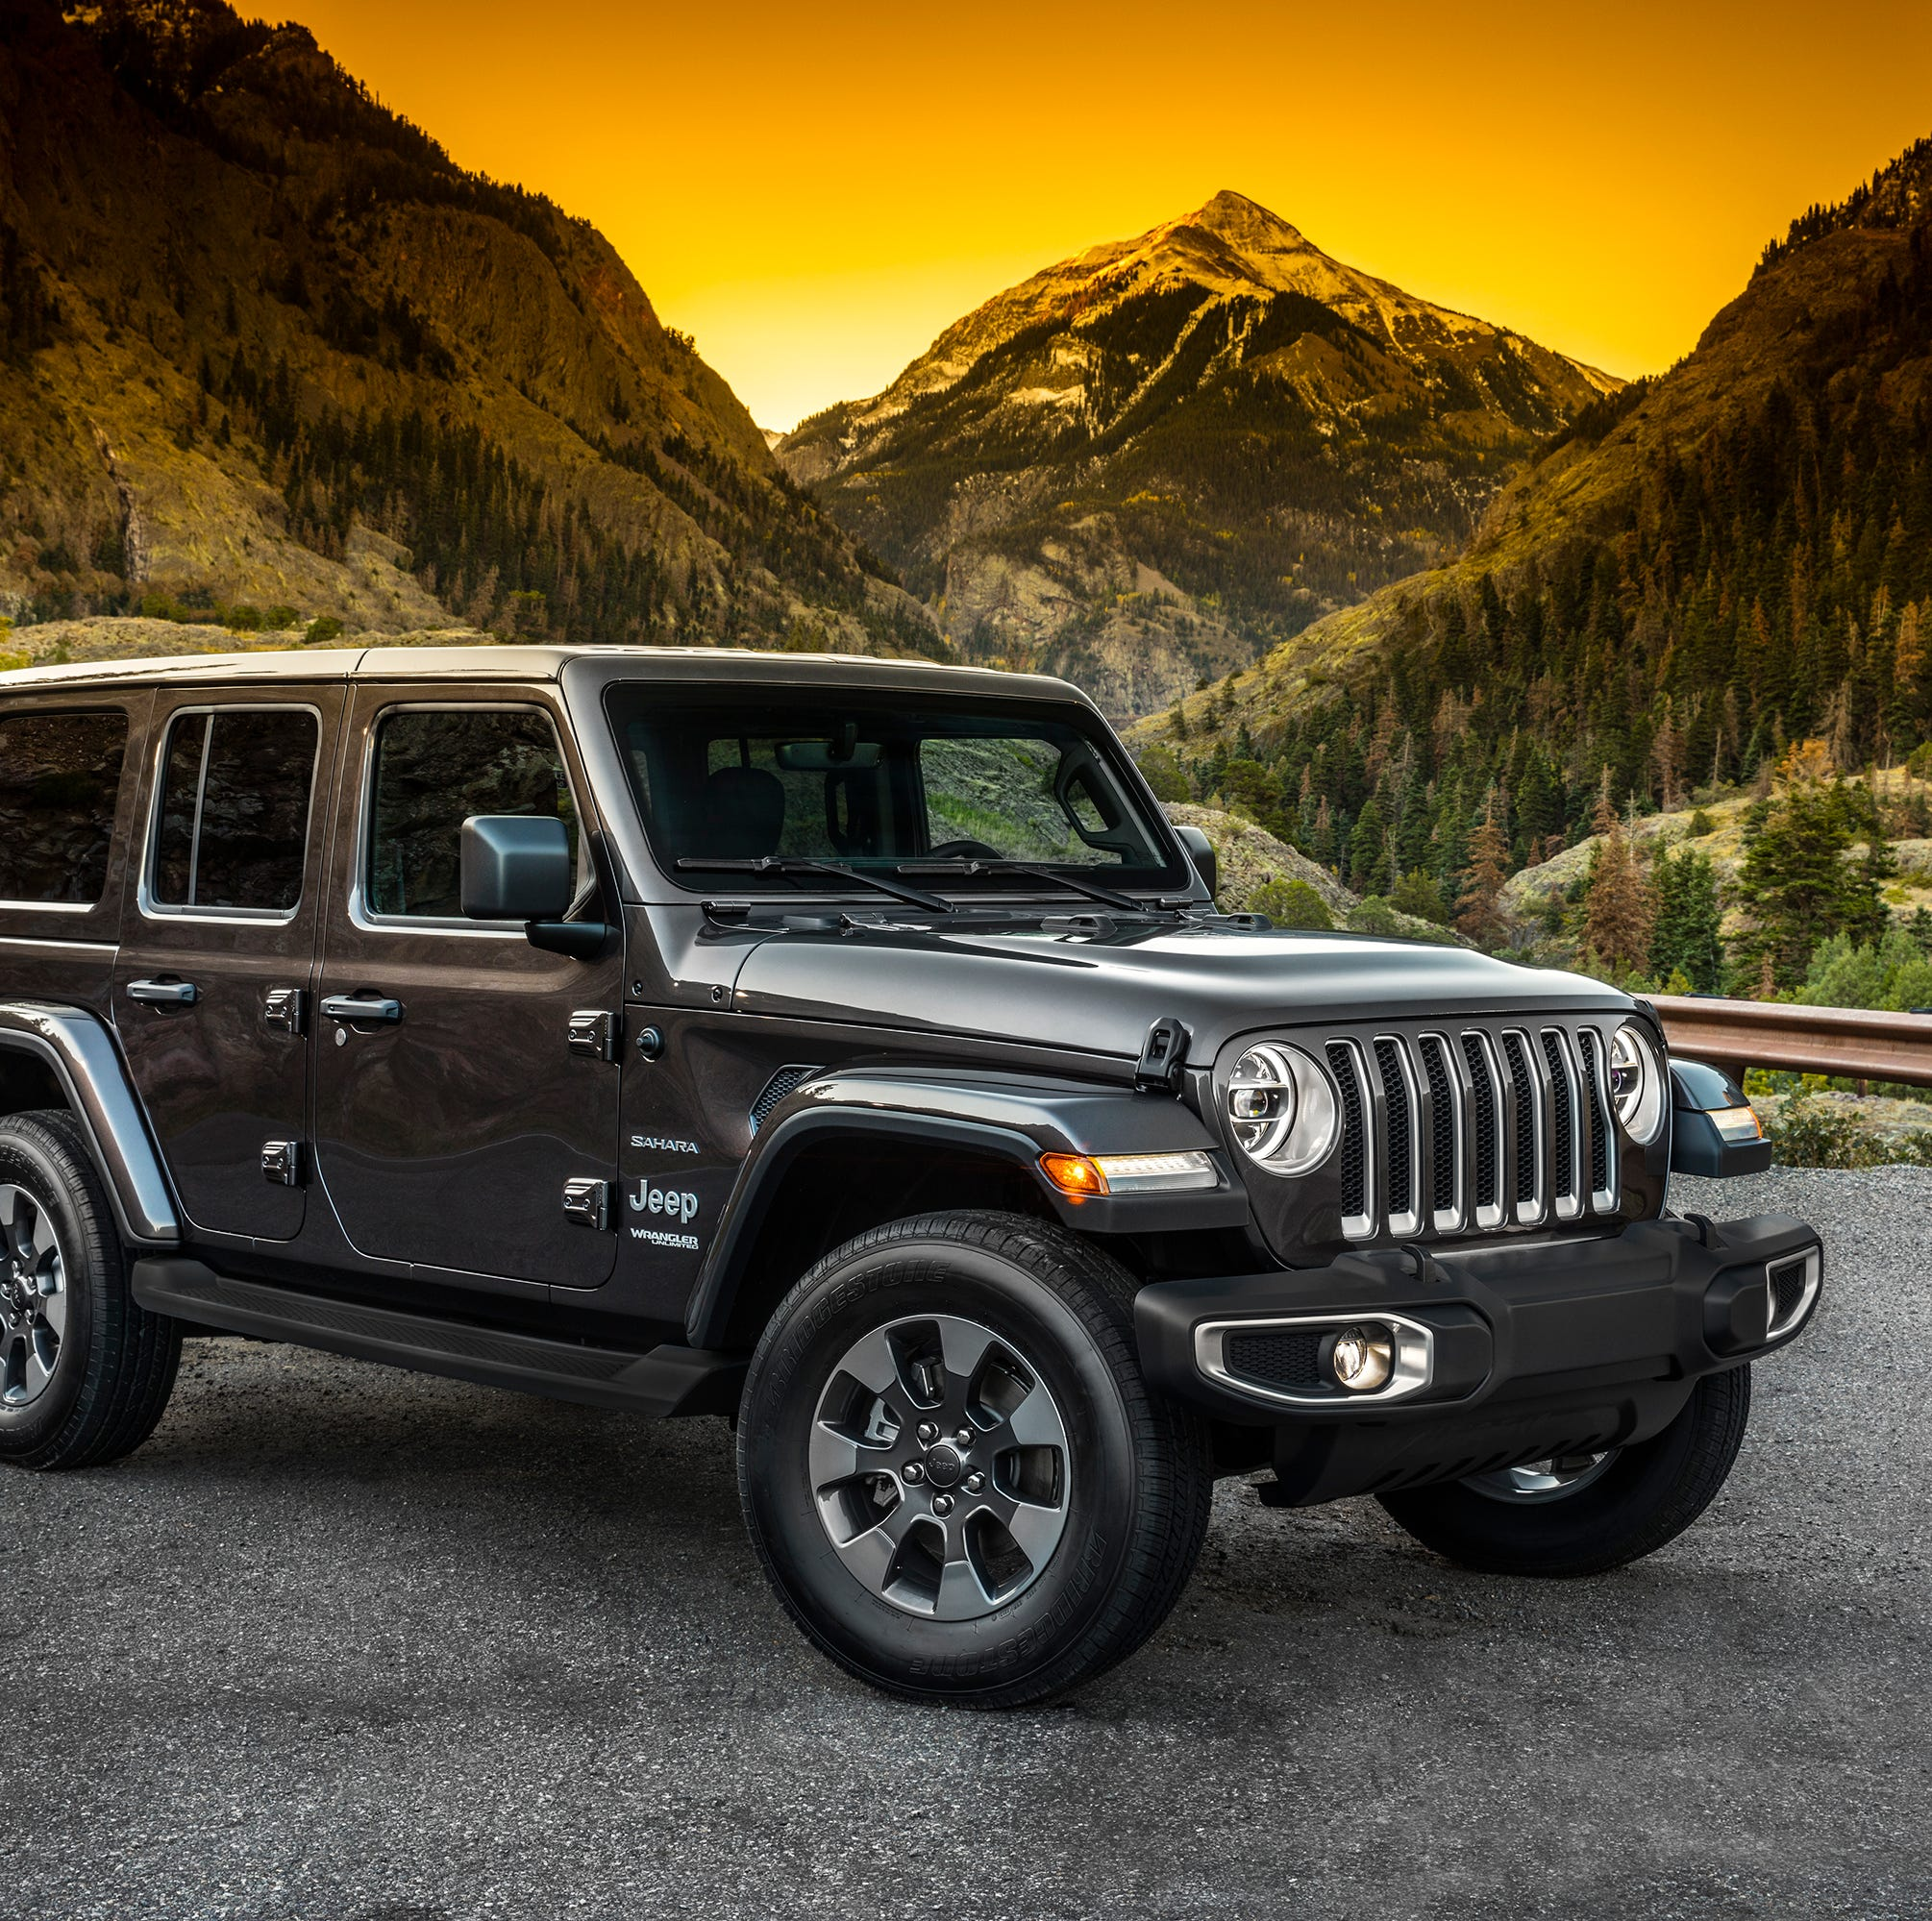 I swore I'd never drive a Jeep Wrangler again. Now I want to buy one